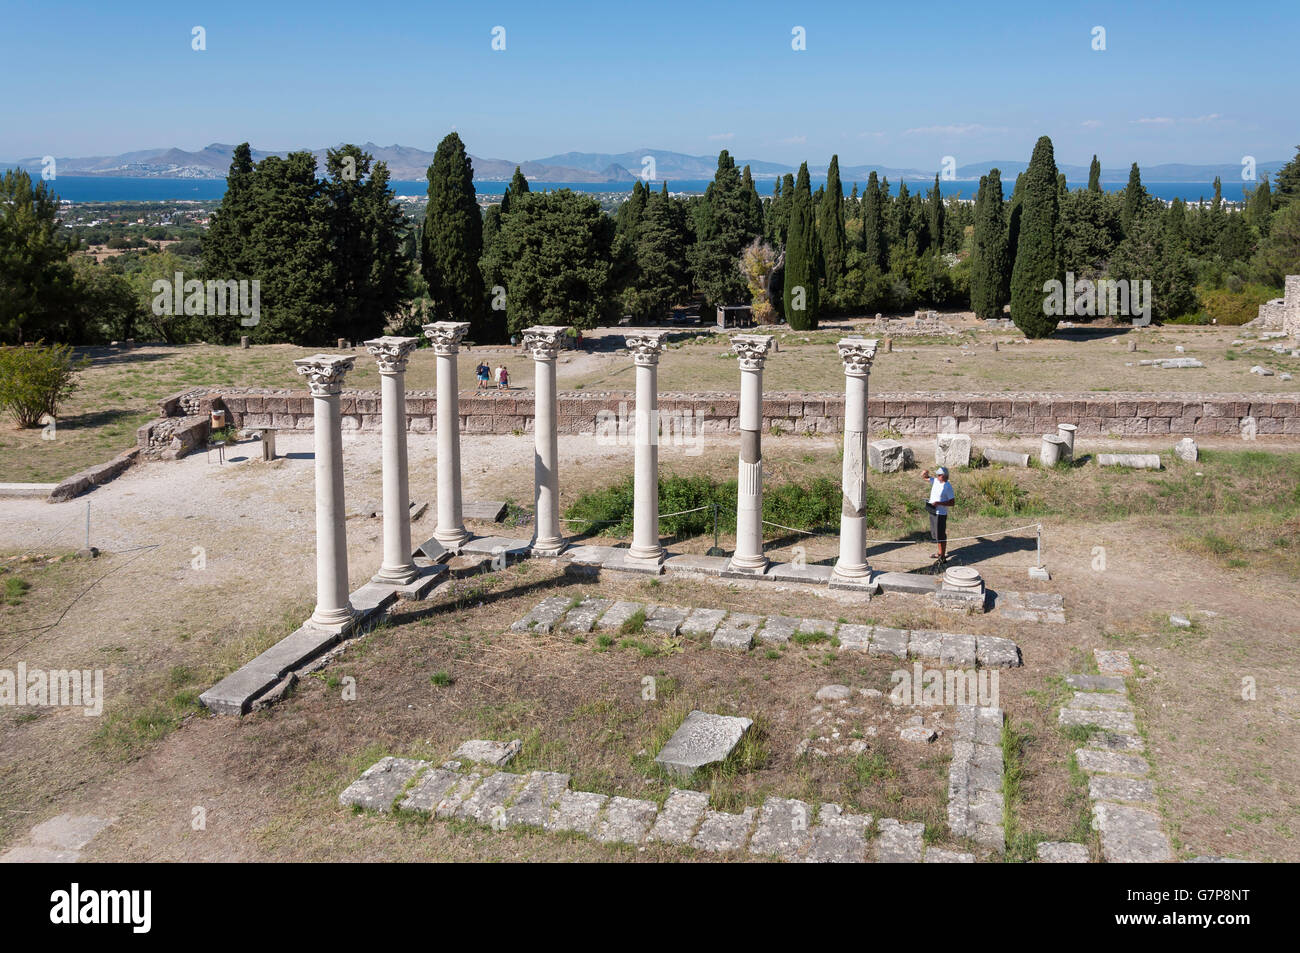 Corinthian columns on The Middle terrace of The Asklepieion, Platani, Kos (Cos), The Dodecanese, South Aegean Region, - Stock Image